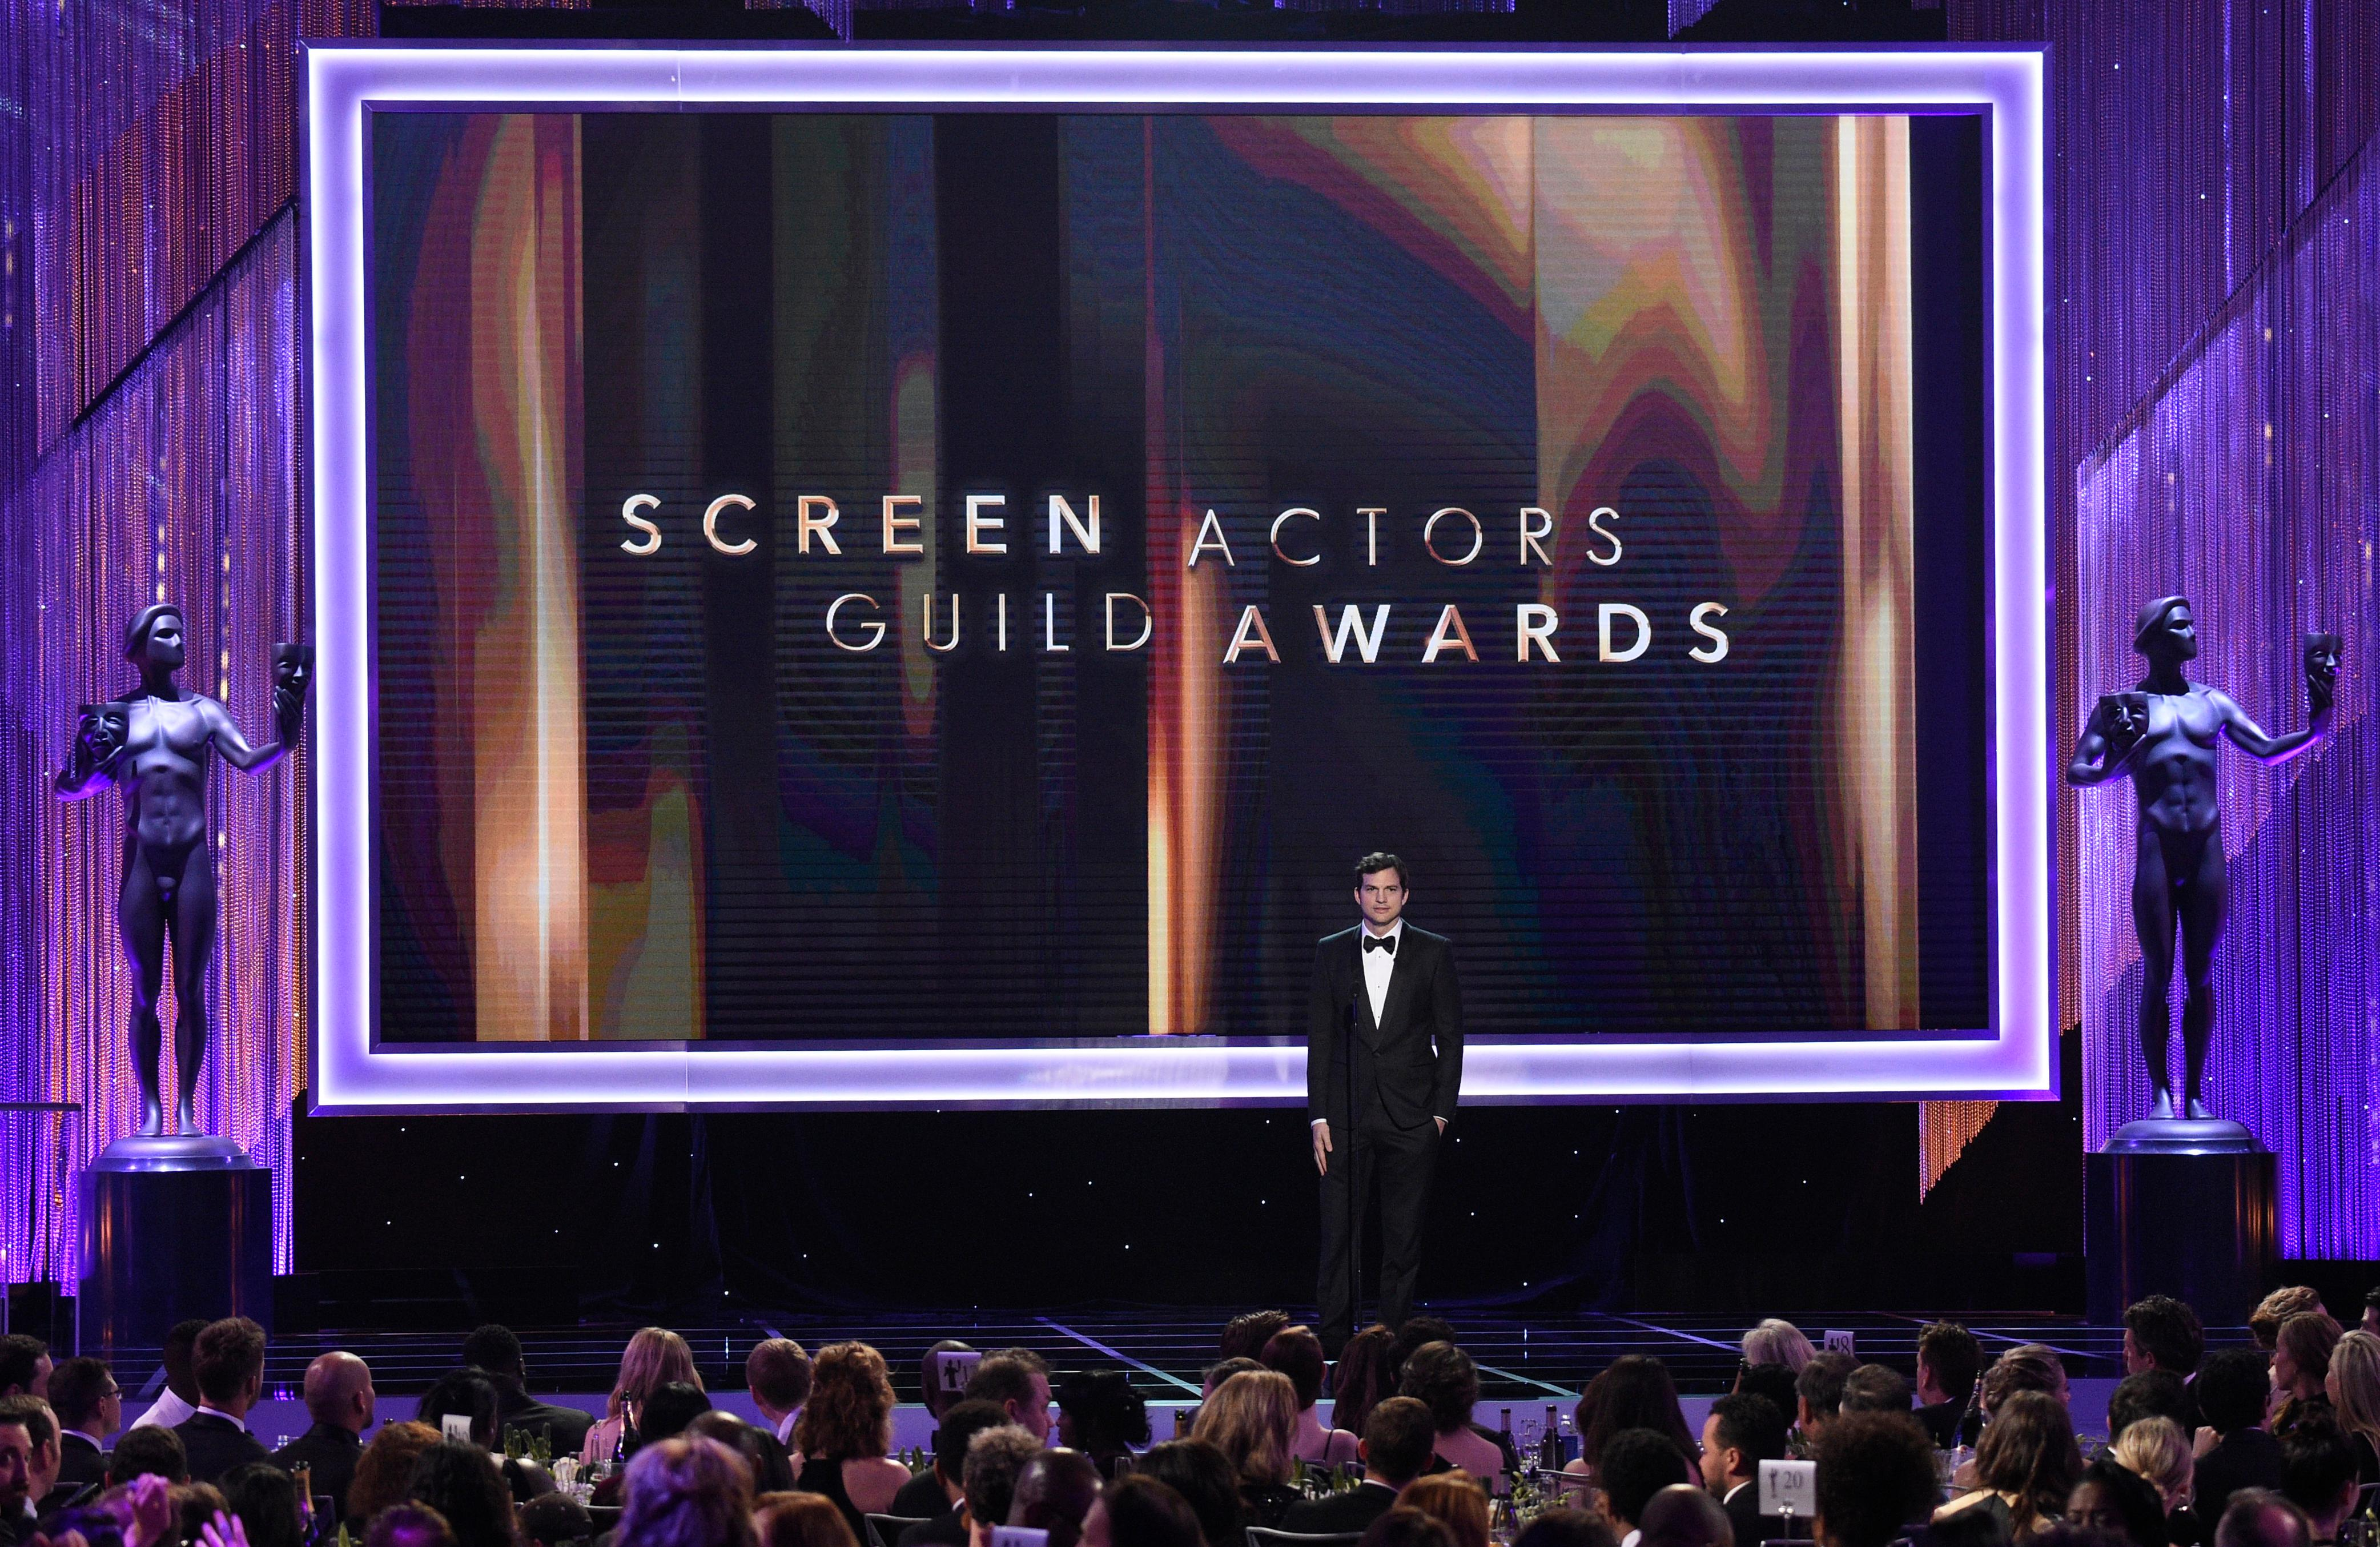 FILE - In this Jan. 29, 2017 file photo, Ashton Kutcher presents the award for outstanding performance by a female actor in a comedy series at the 23rd annual Screen Actors Guild Awards in Los Angeles. The 2018 SAG Awards nominations for achievements in film and television will be announced on Wednesday, Dec. 13.  (Photo by Chris Pizzello/Invision/AP, File)